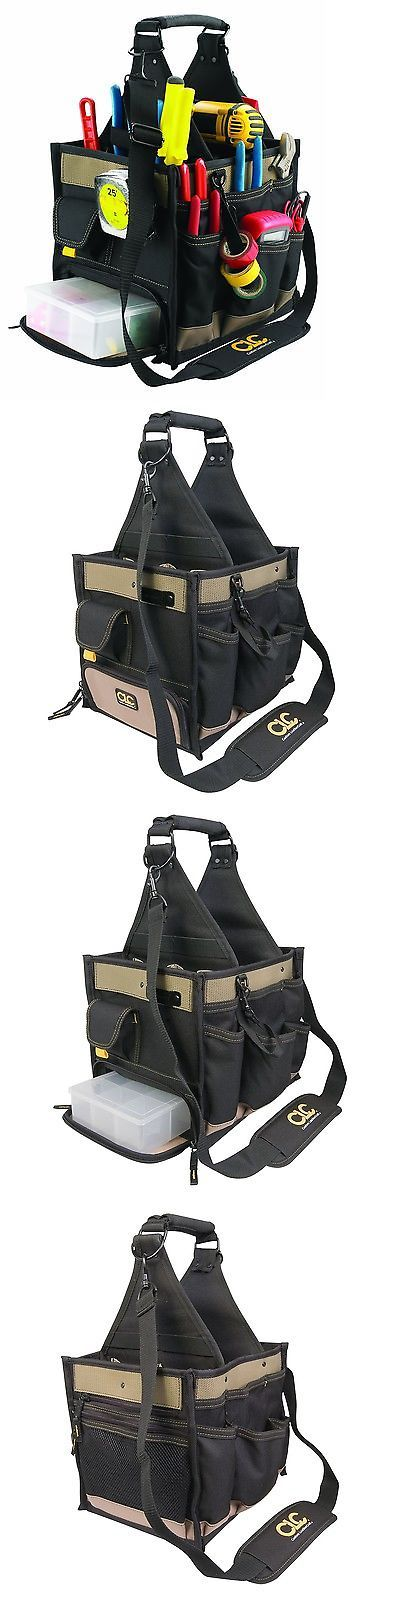 Bags Belts and Pouches 42362: Custom Leathercraft 1528 23 Pocket Large Electrical And Maintenance Tool Carr... -> BUY IT NOW ONLY: $51.52 on eBay!